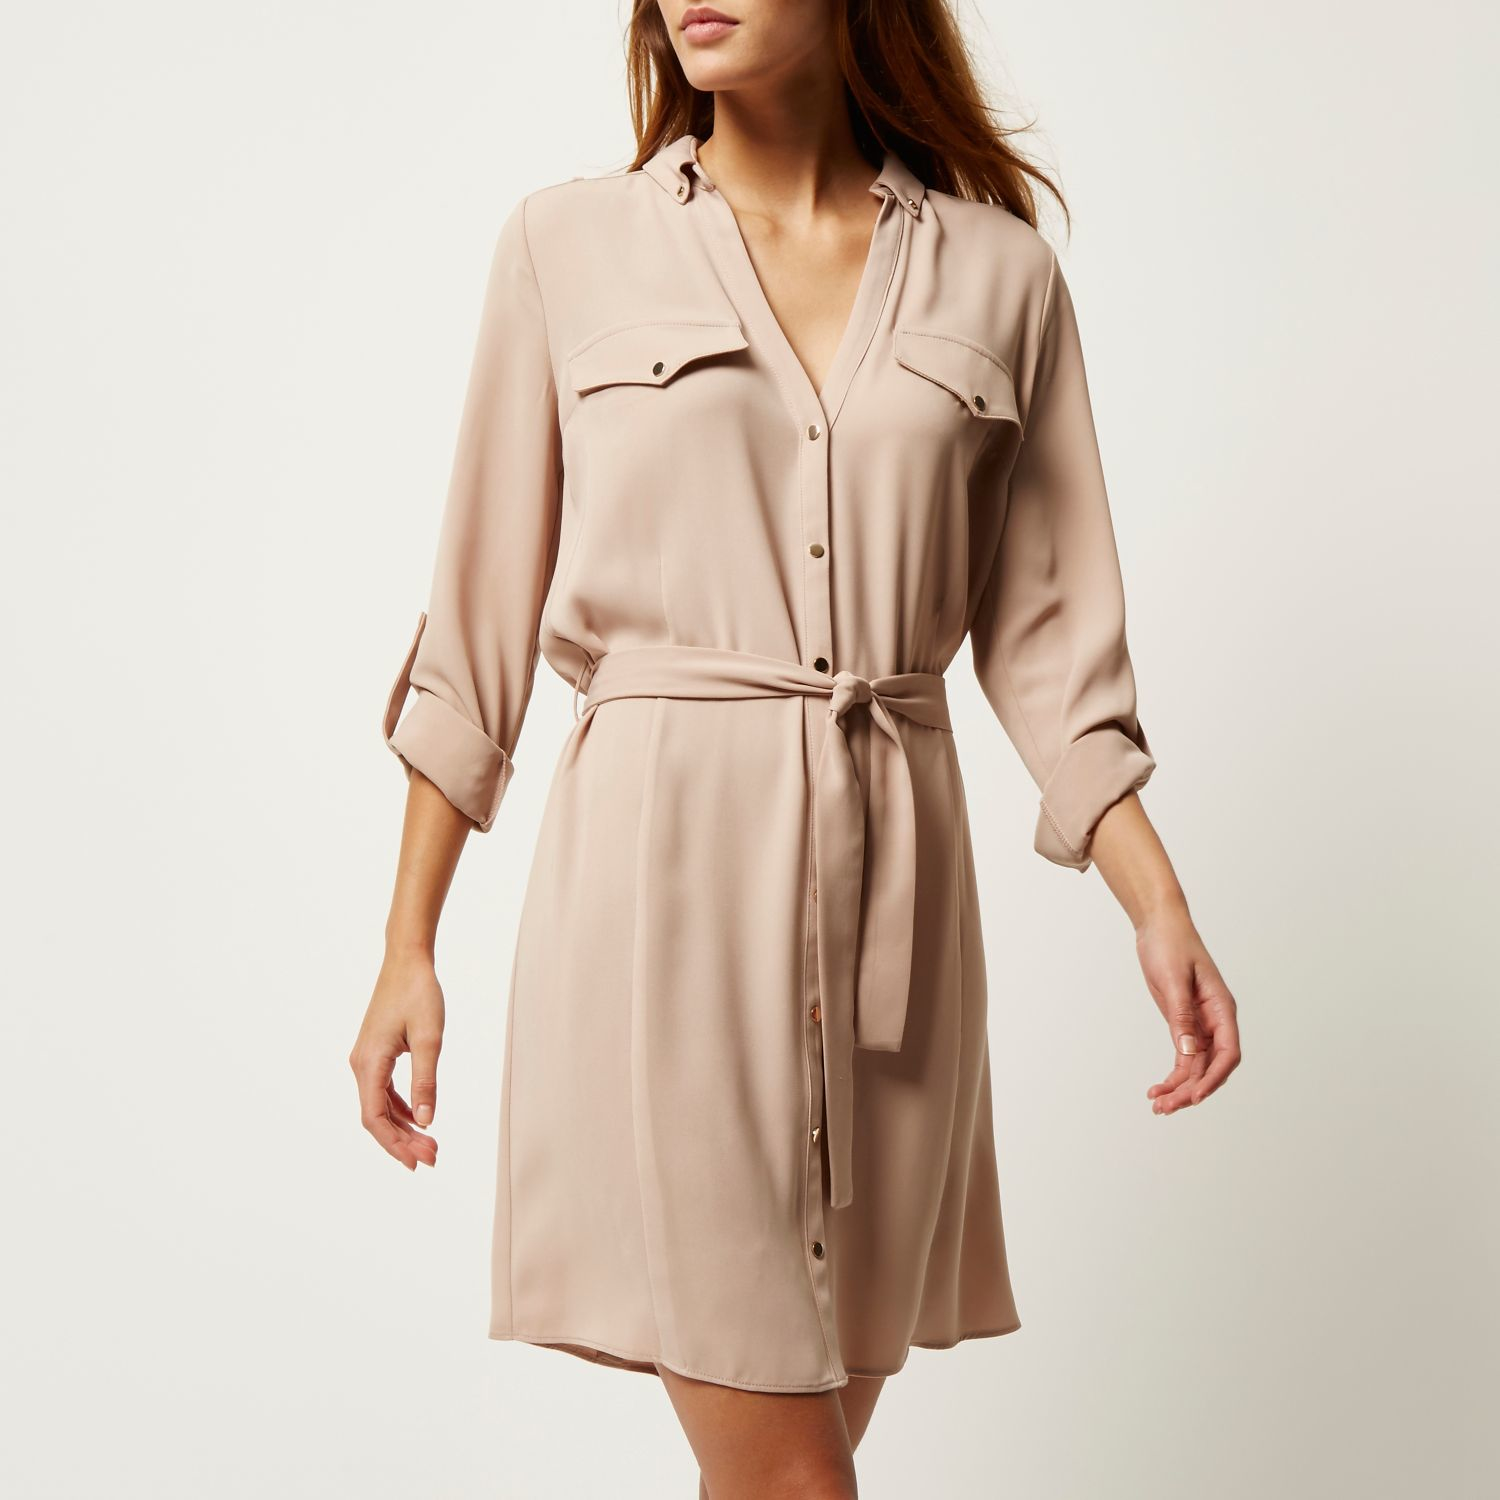 72288ac9512 River Island Beige Crepe Military Shirt Dress in Natural - Lyst